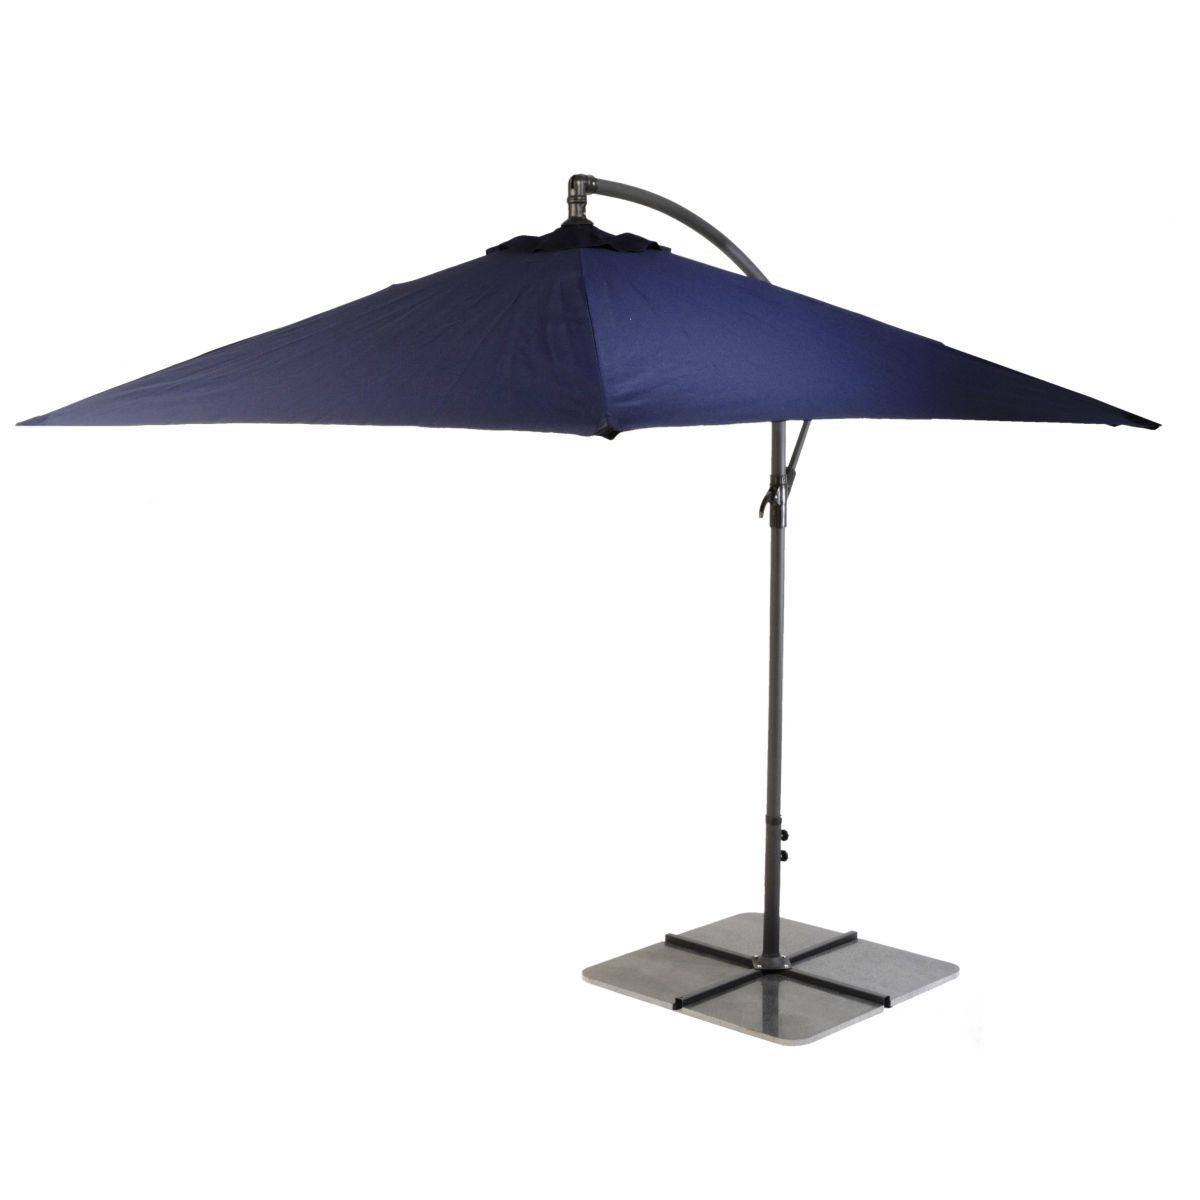 Best And Newest Maidenhead Cantilever Umbrellas Intended For Oaktree Garden Centre Glencrest Parasol Sturdi Plus Cantilever 3m (Gallery 17 of 20)